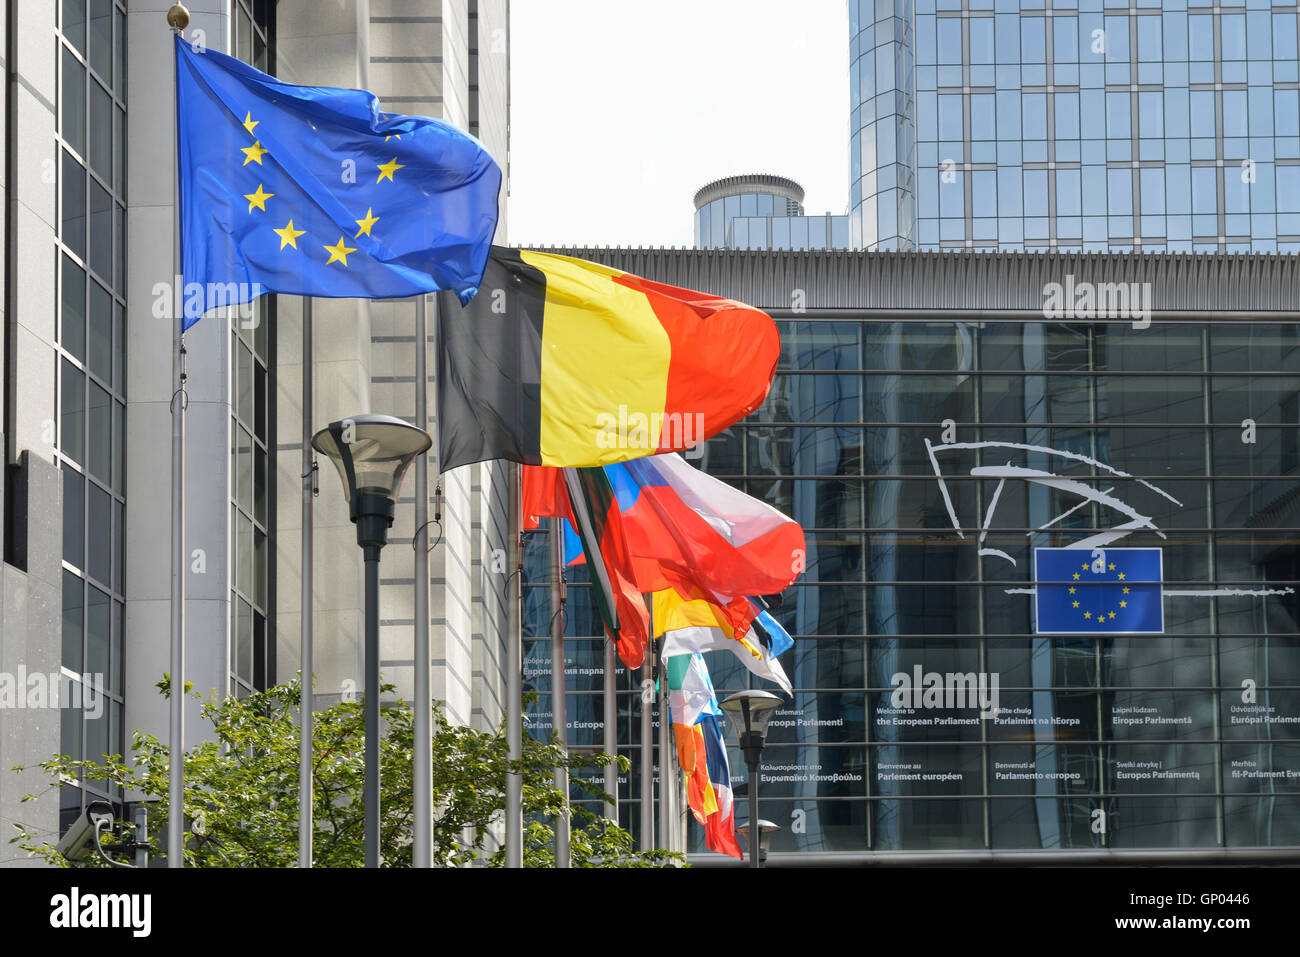 National Flags Flying at The European Parliament Building, Brussels, Belgium -1 - Stock Image